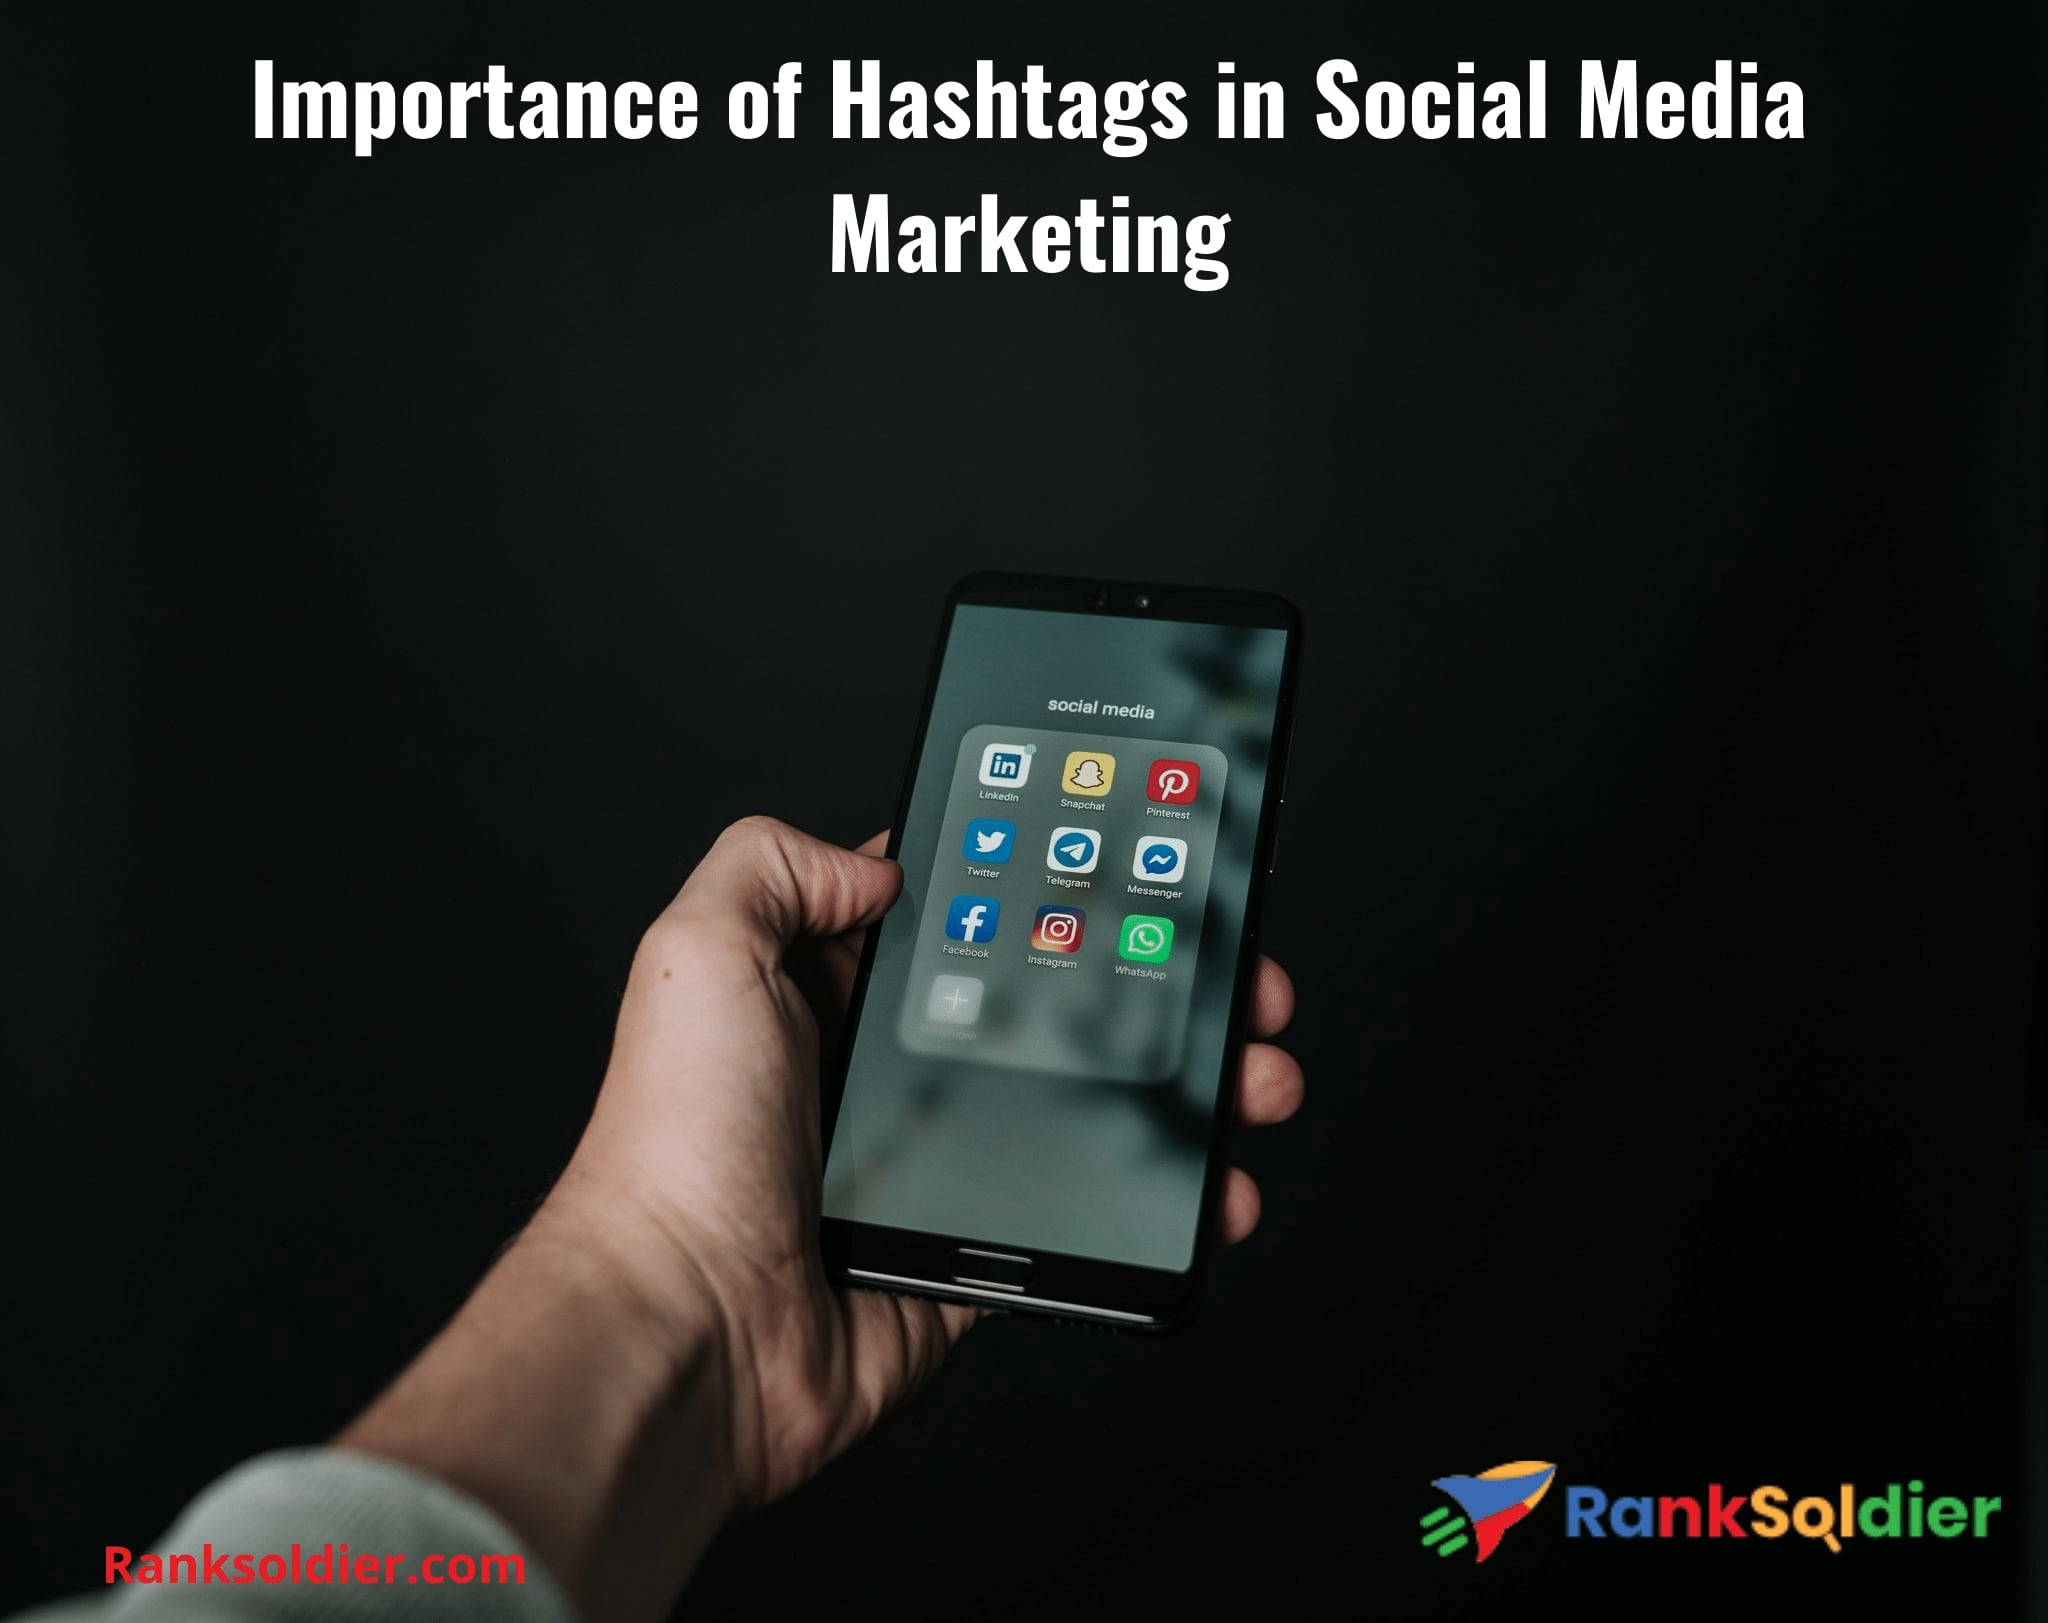 Importance of Hashtags in Social Media Marketing